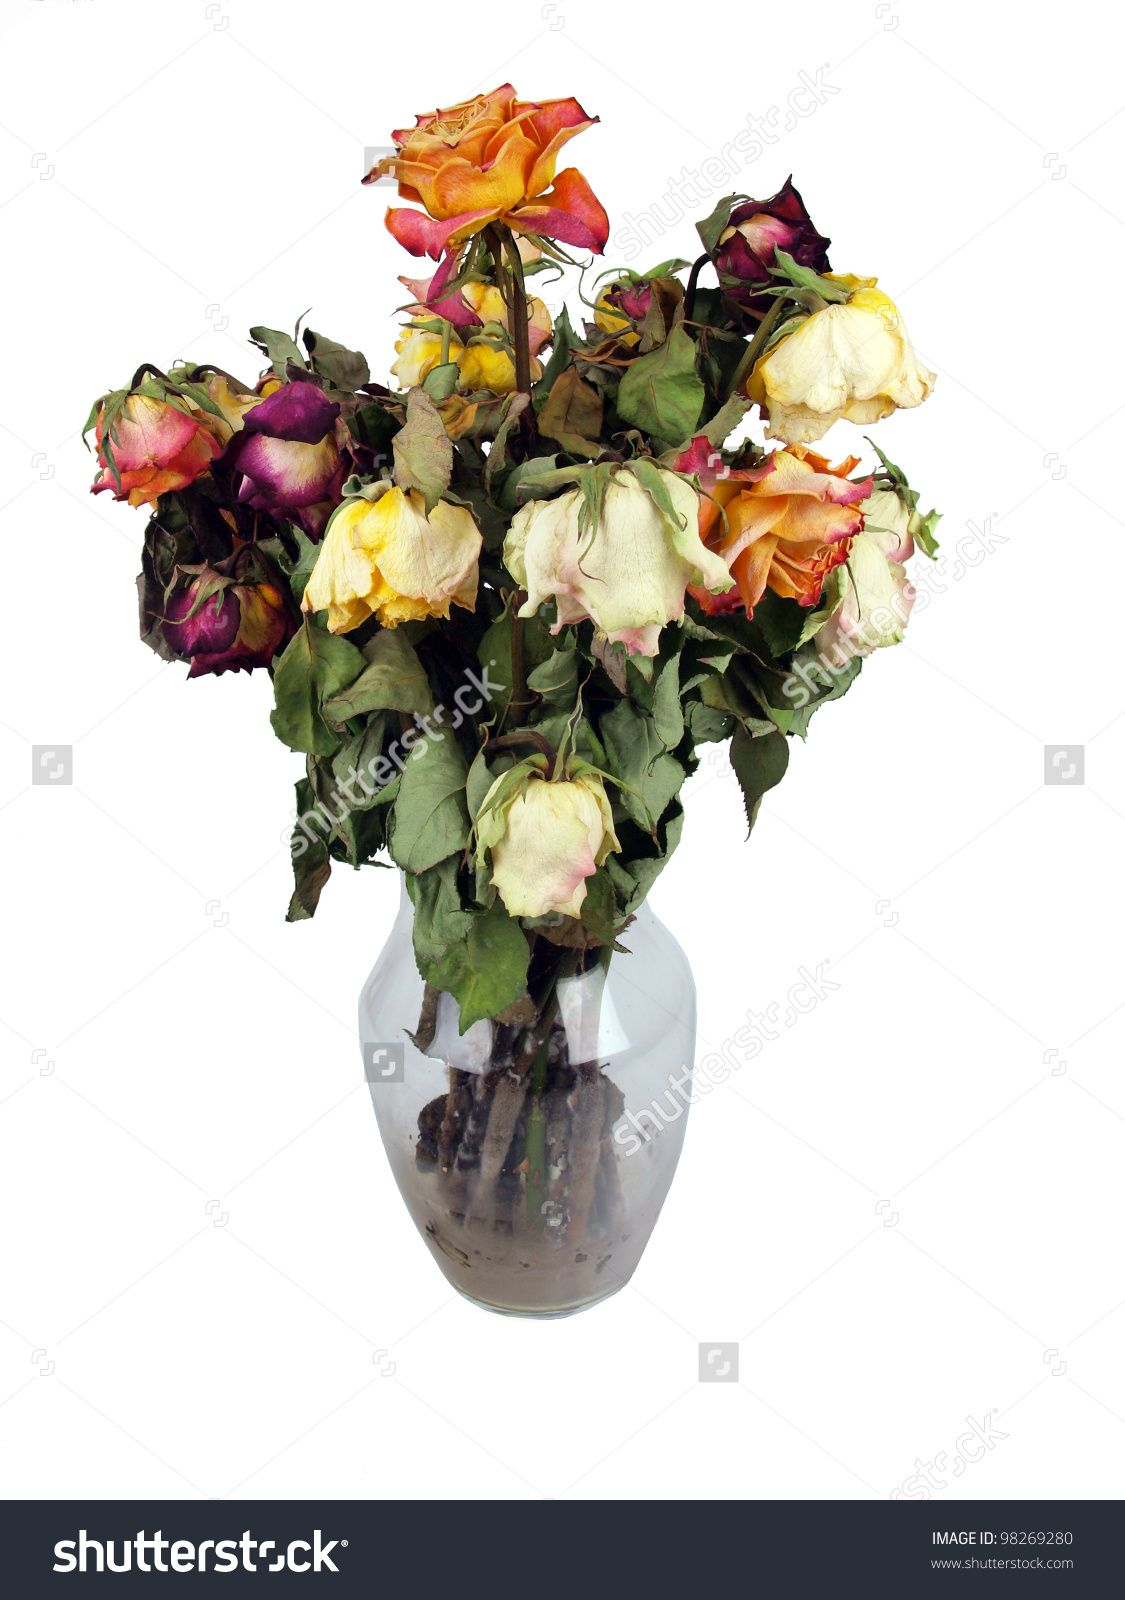 Stock photo a bouquet of dead roses in a clear glass vase 98269280 stock photo a bouquet of dead roses in reviewsmspy